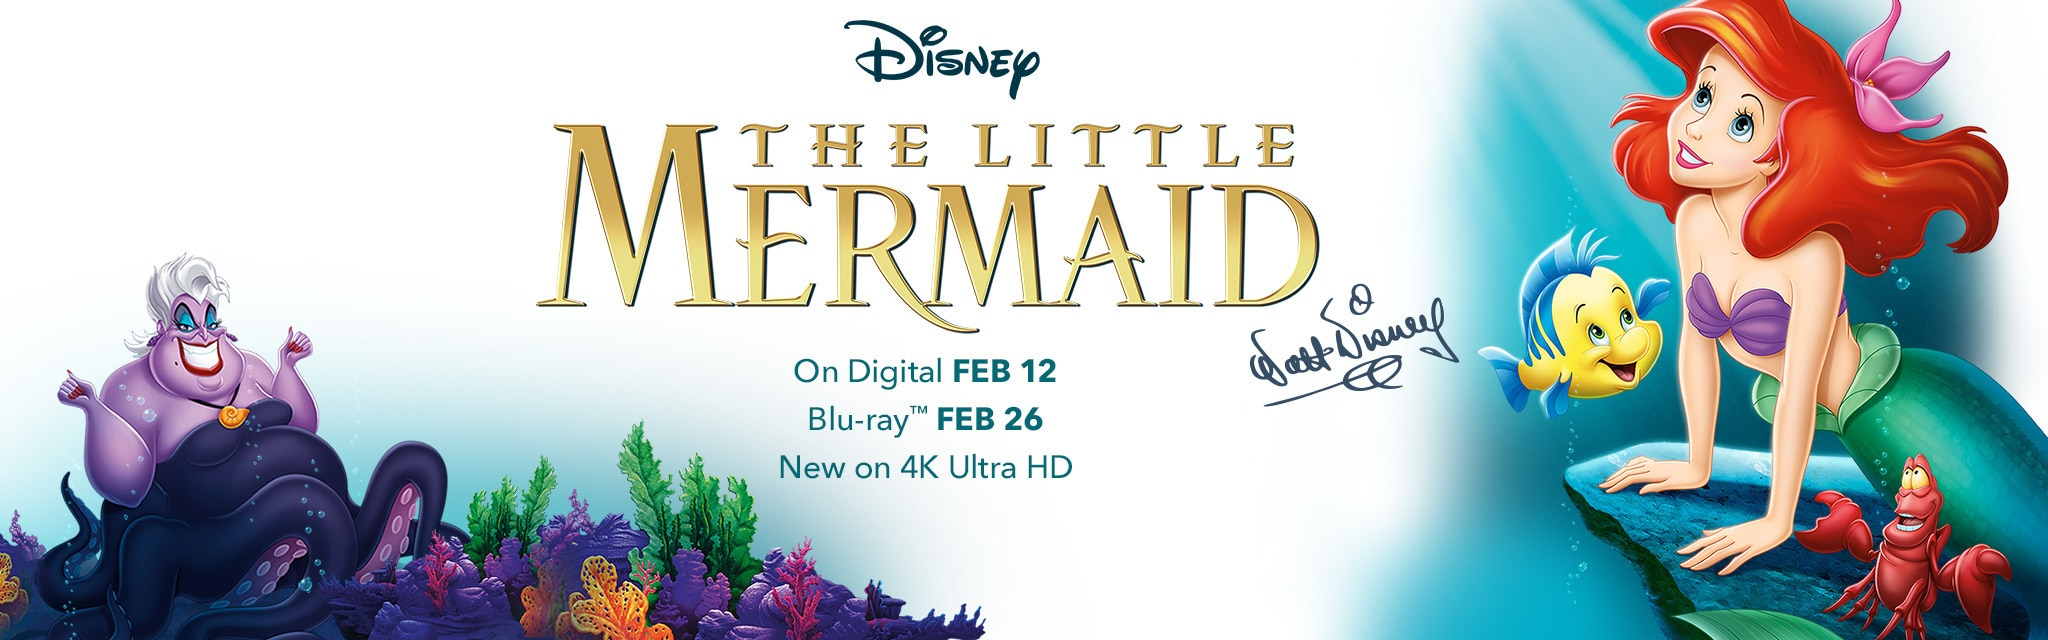 The Little Mermaid - On Digital Feb 12 | Blu-ray(TM) Feb 26 | New on 4K Ultra HD